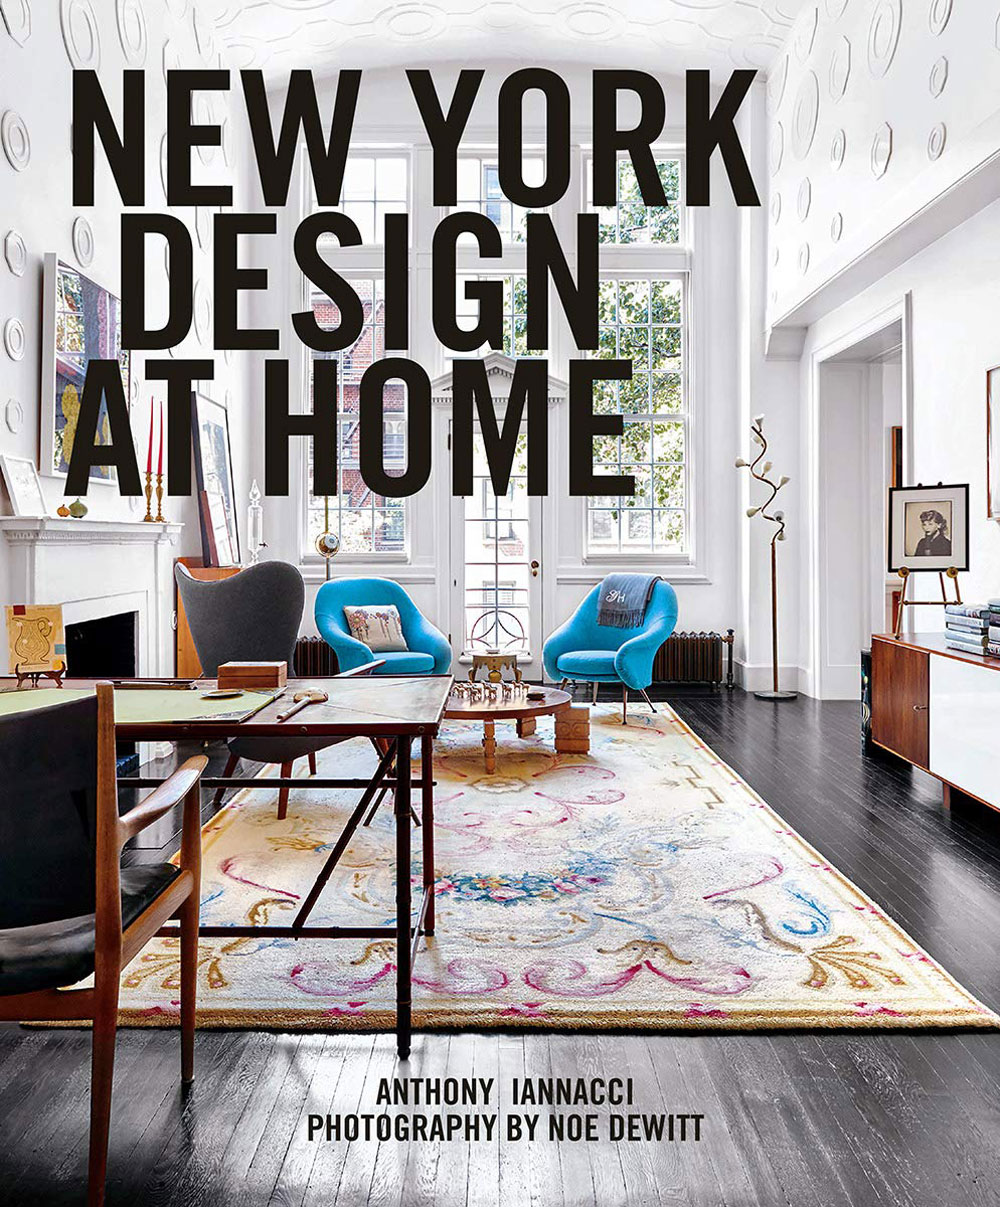 New York Design at Home, a book written by Anthony Iannacci with photographs by Noe DeWitt.